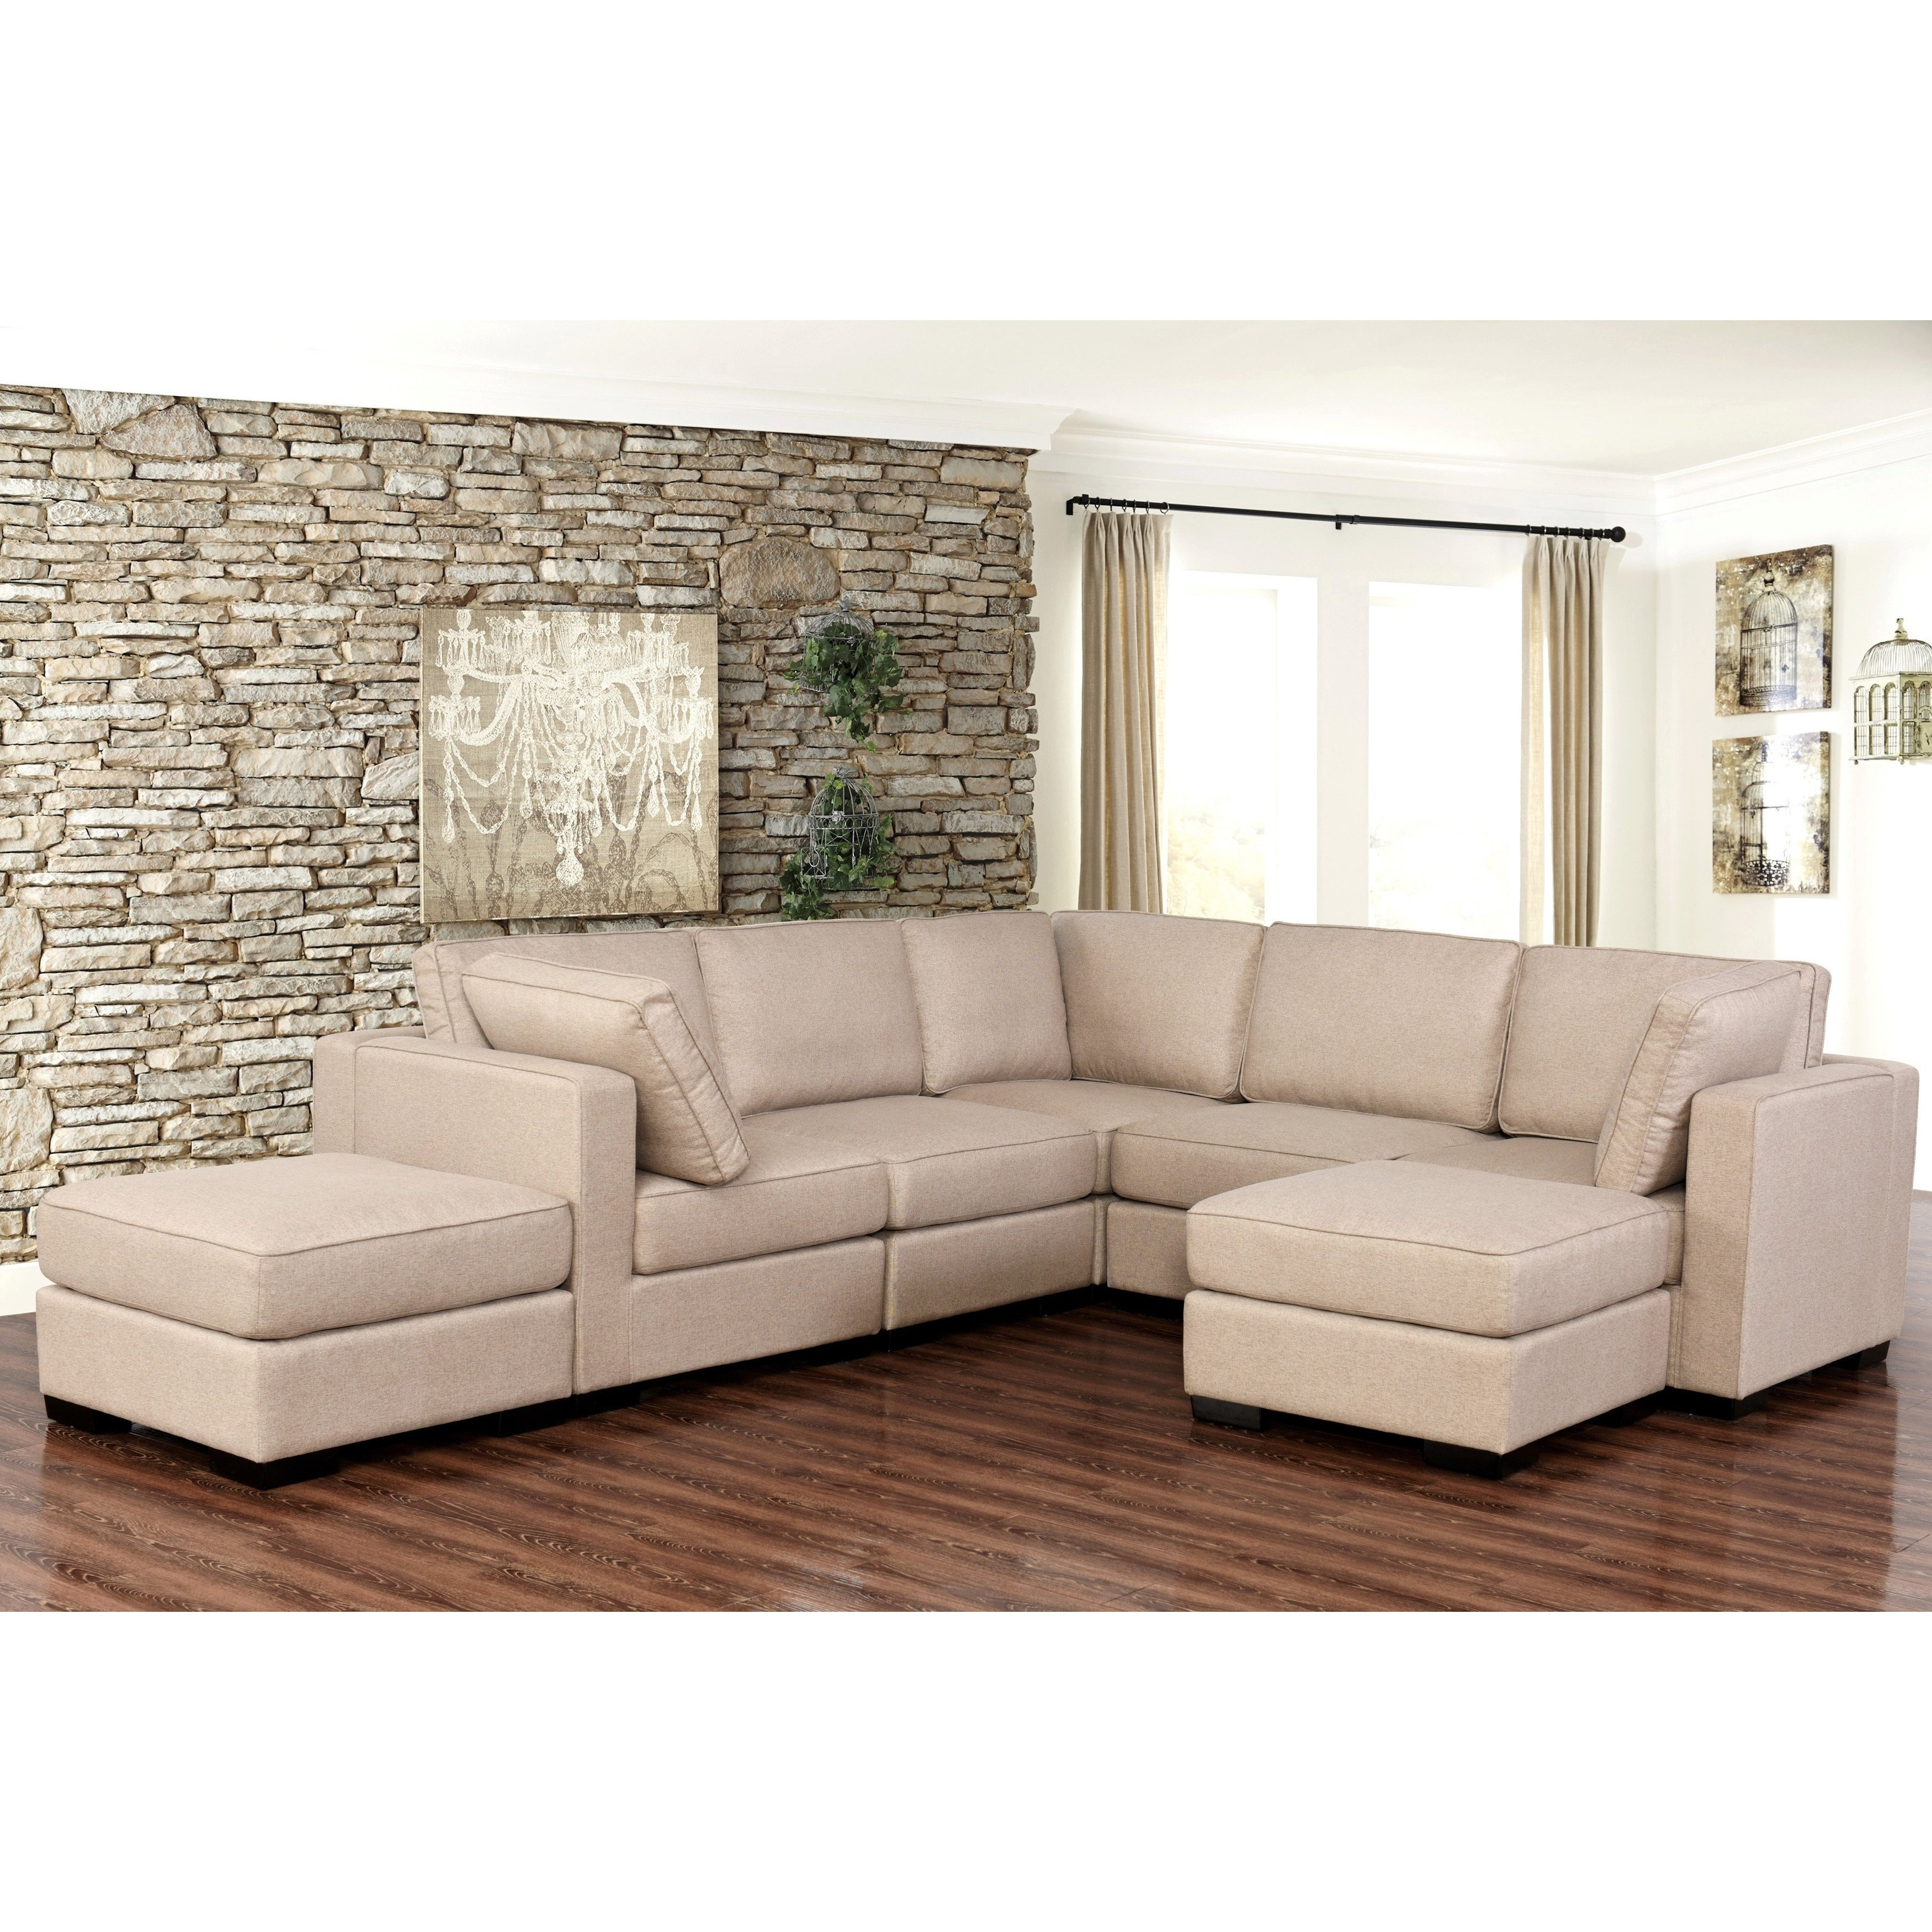 Shop Abbyson Harper Fabric Modular 7-Piece Sectional - Free Shipping inside Harper Down 3 Piece Sectionals (Image 26 of 30)